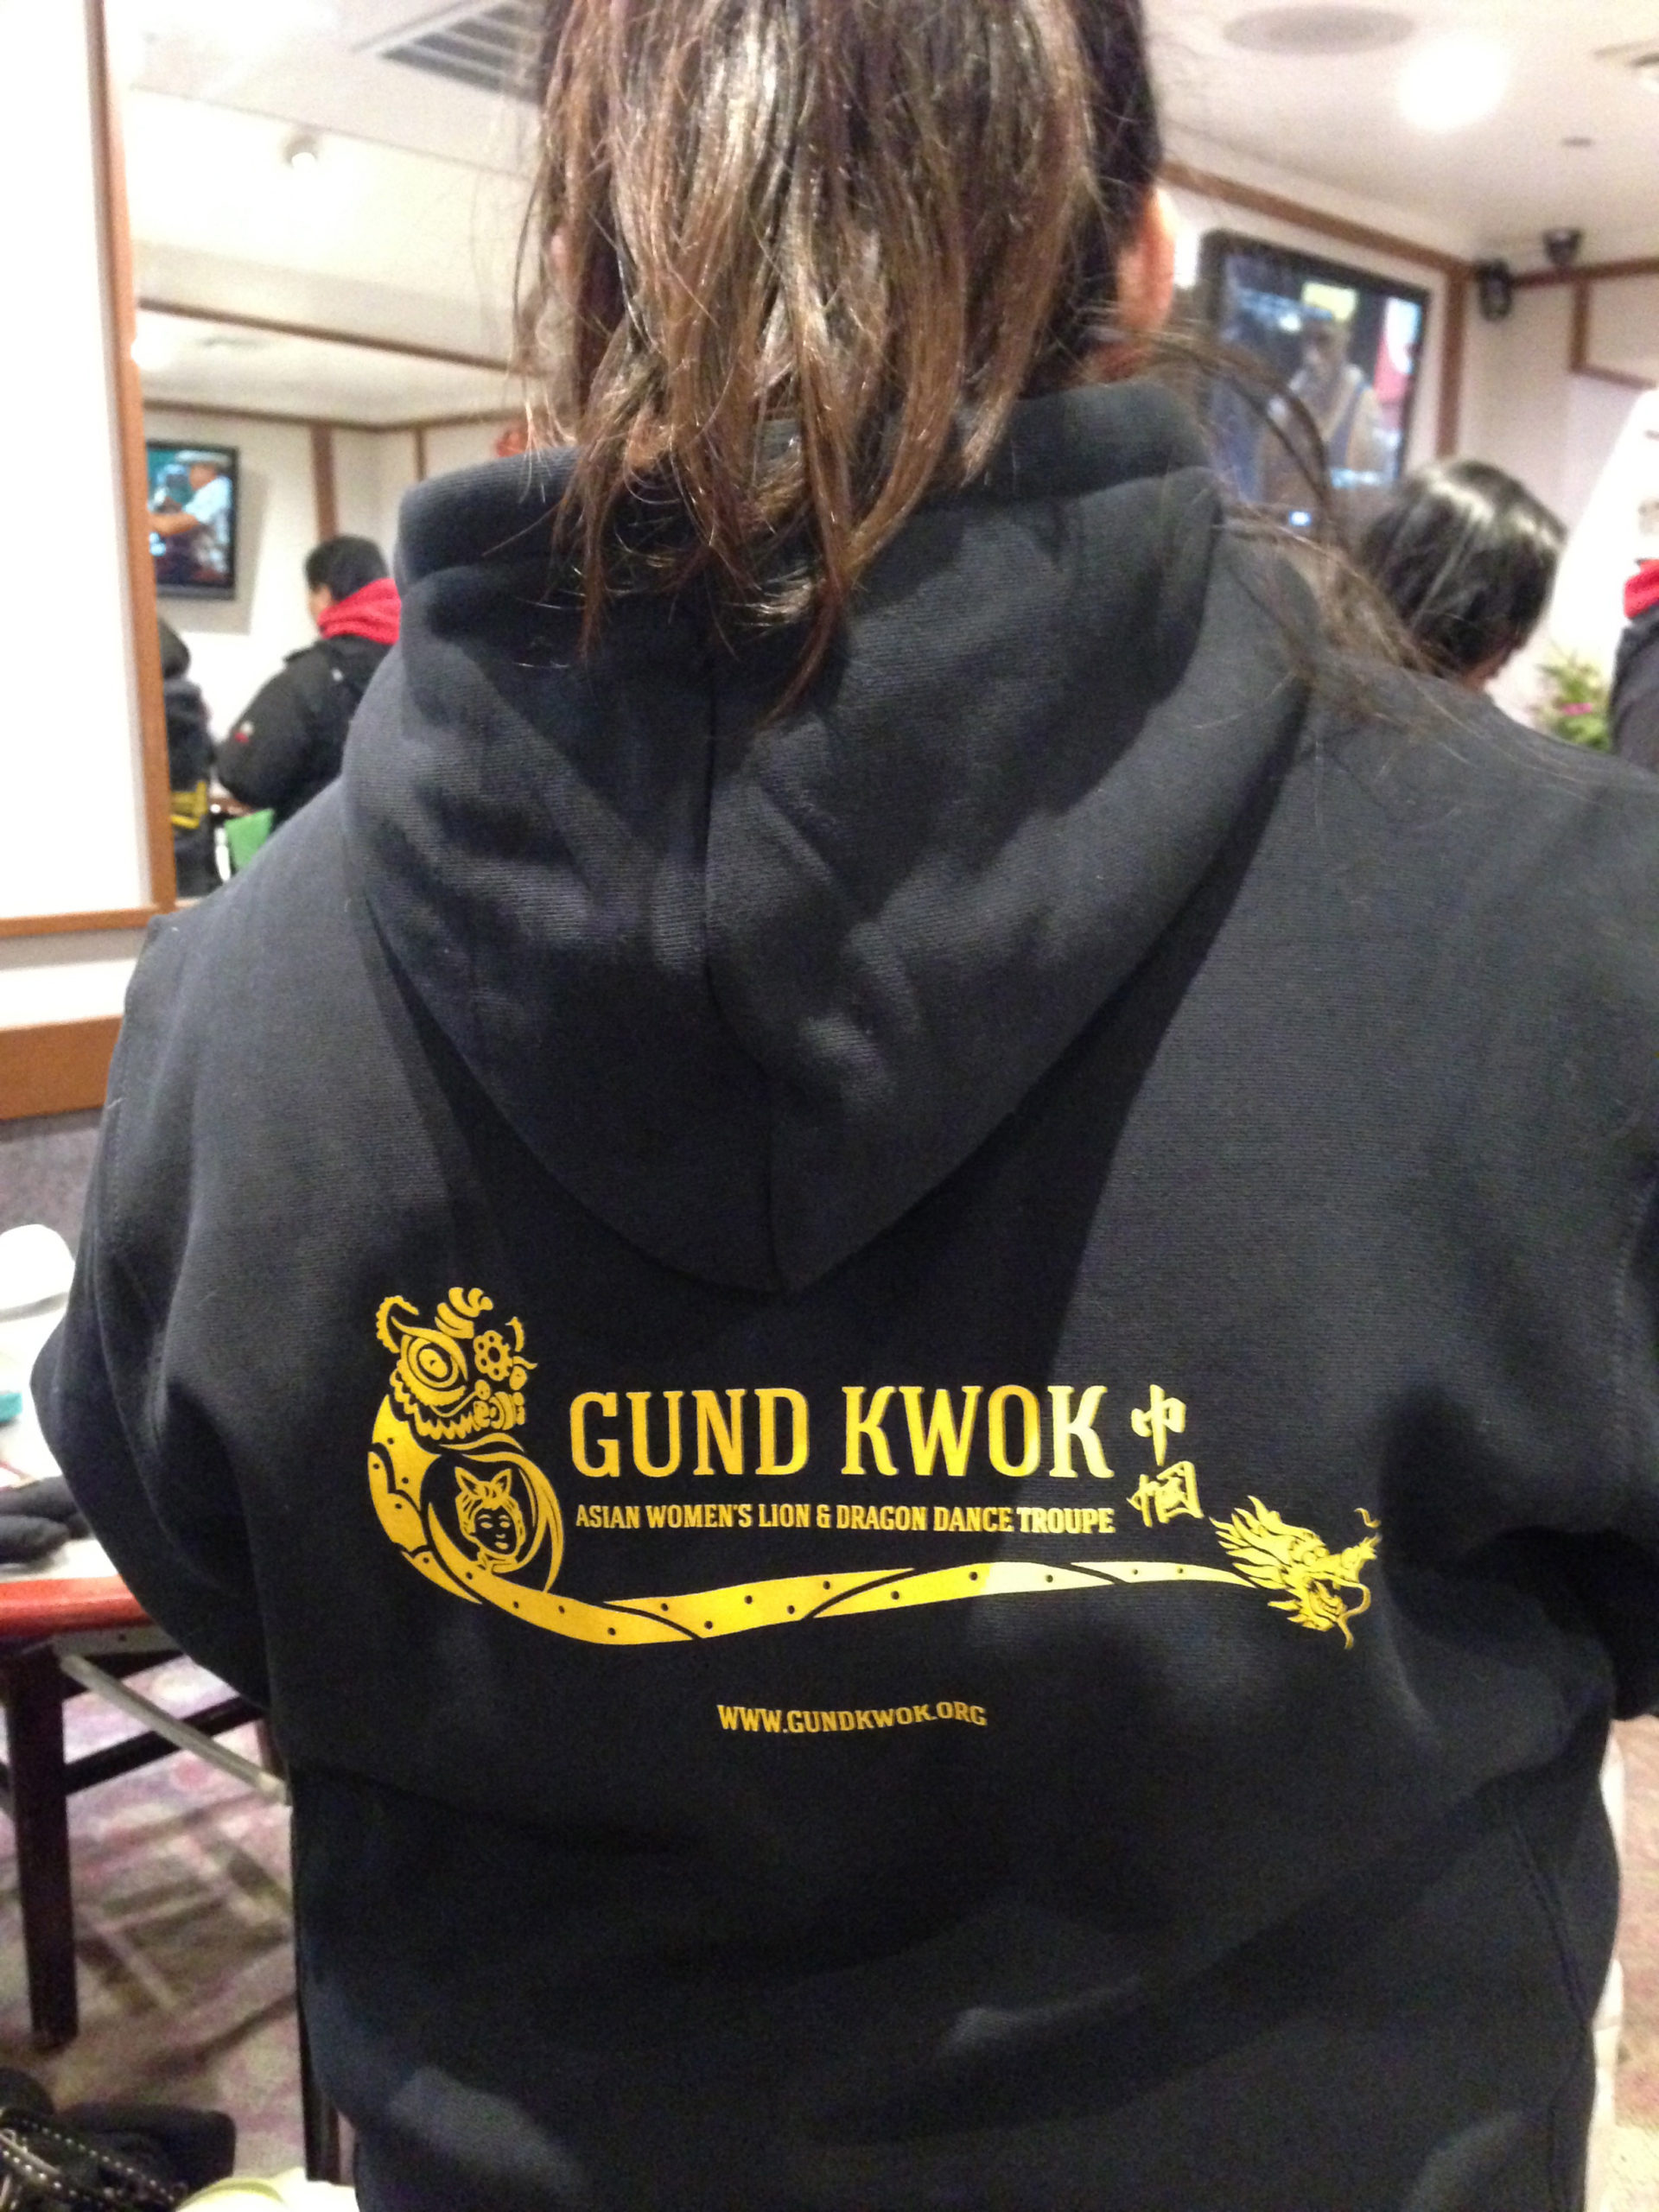 Gund Kwok logo & branding | LILLIAN LEE Art & Design